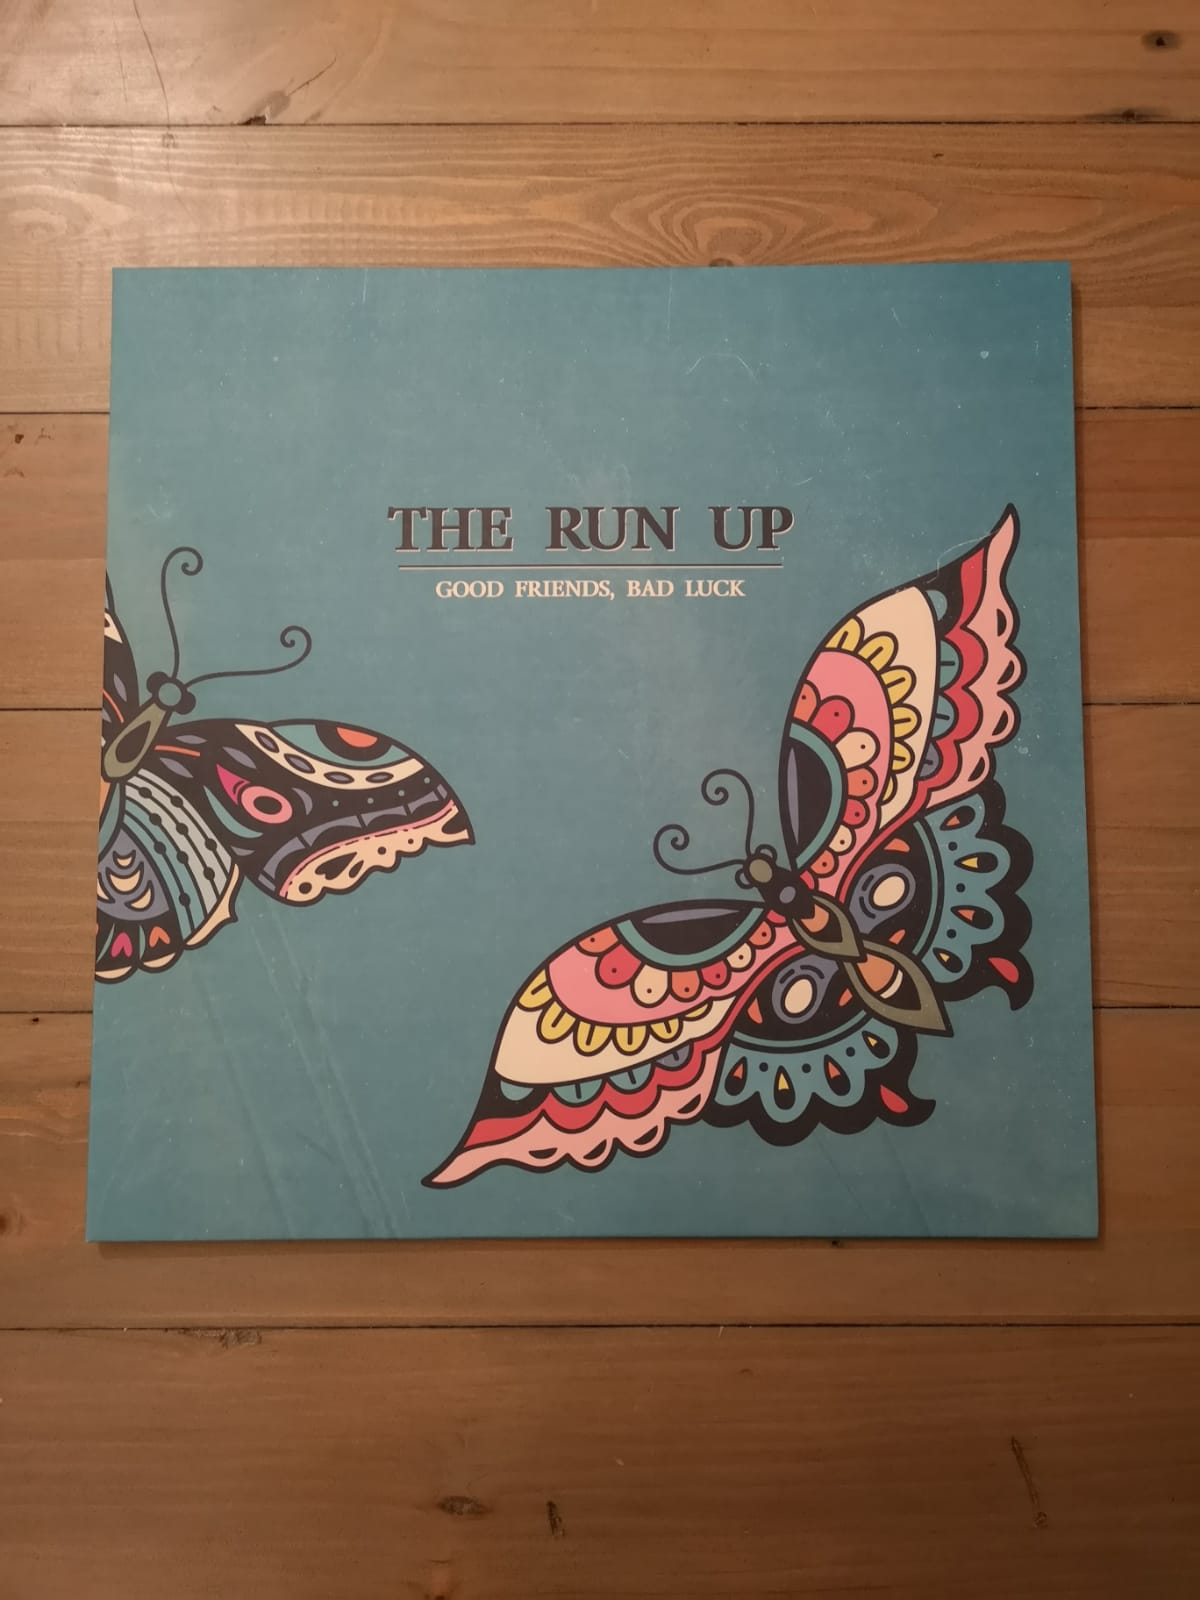 SPECIAL OFFER - The Run Up and New Junk City limited release vinyls